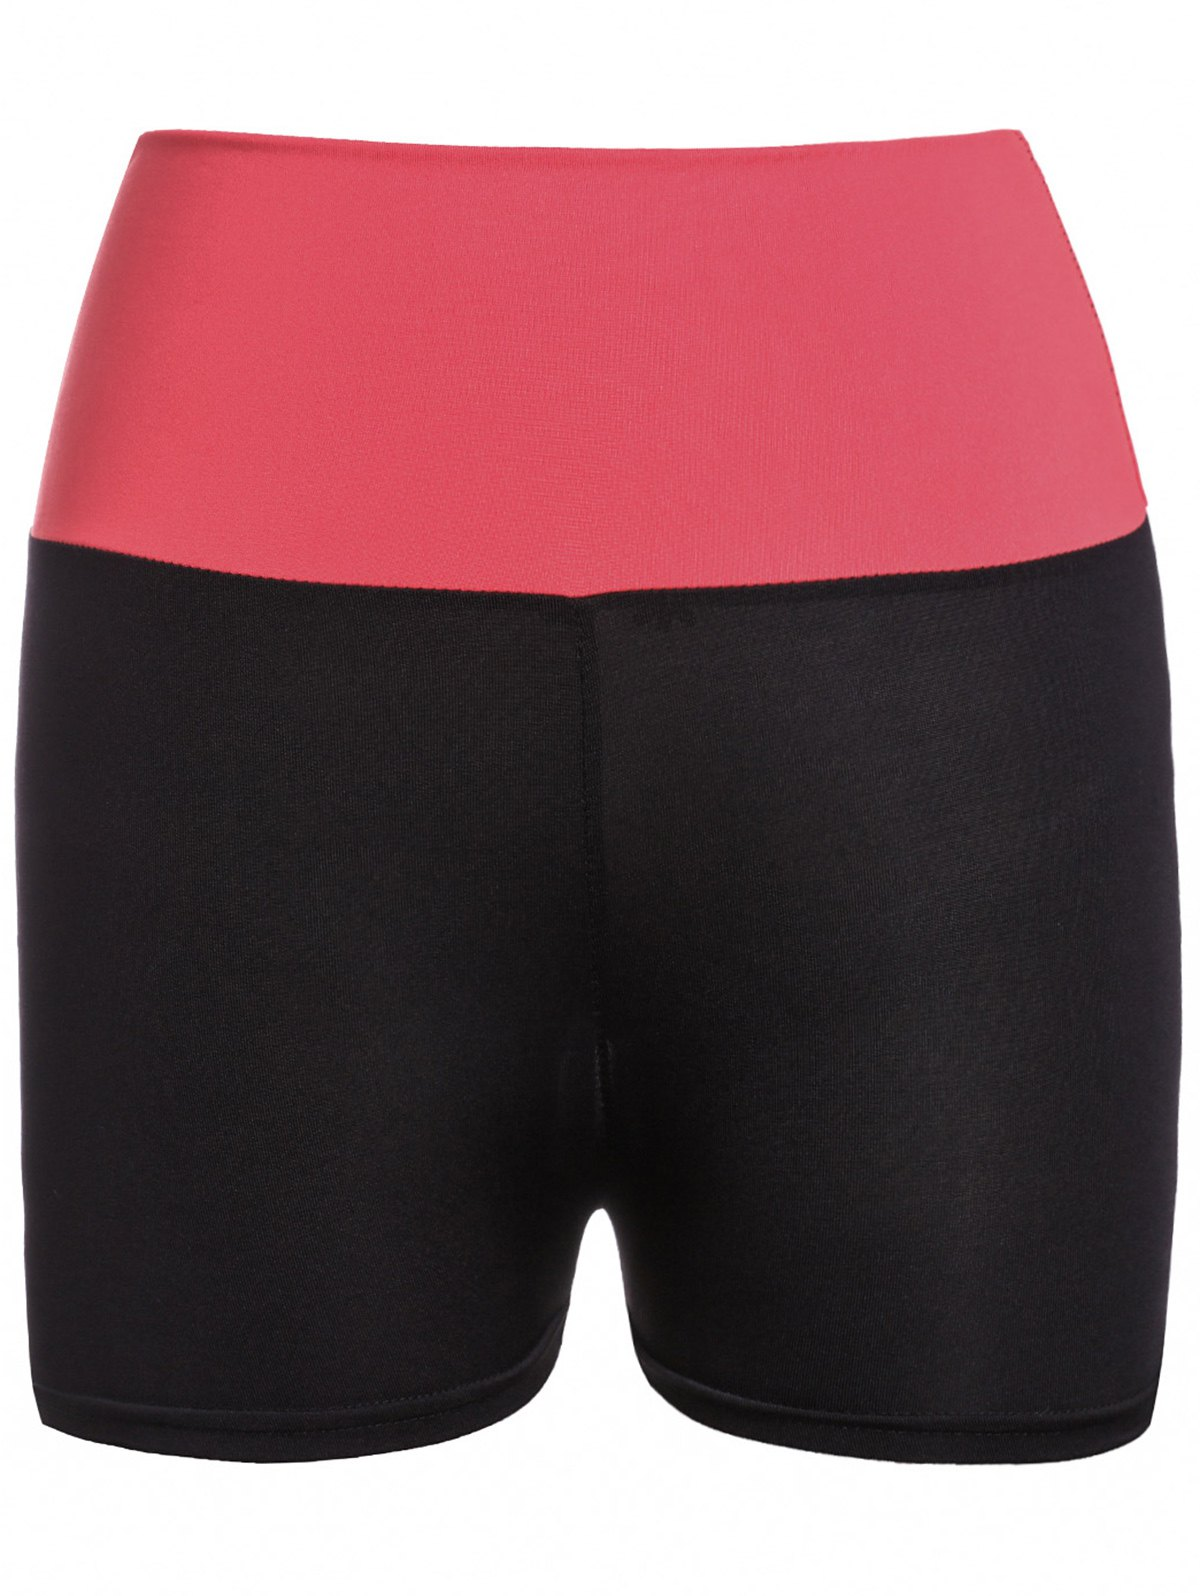 Active Style Elastic Waist Color Block Skinny Women's Yoga Shorts